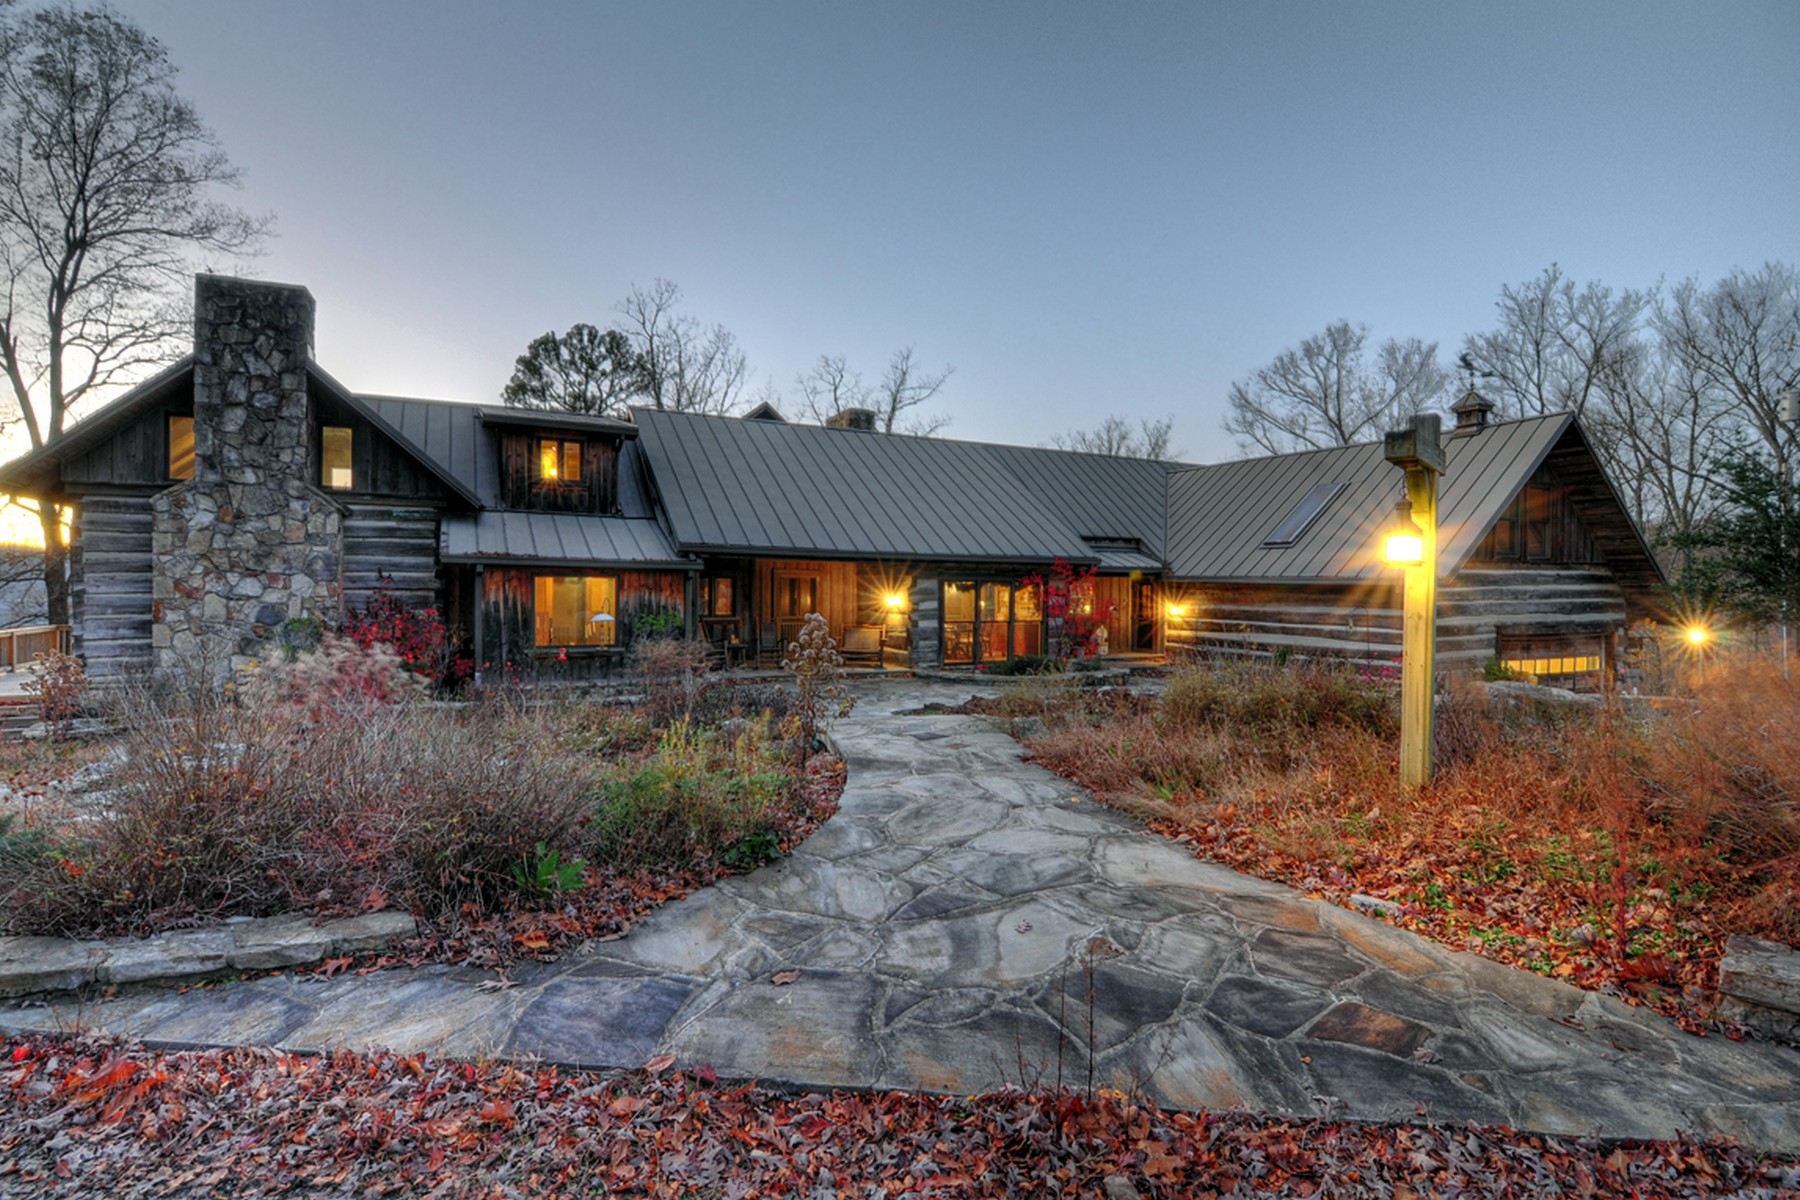 Property For Sale at The Retreat at Sleepy Hollow